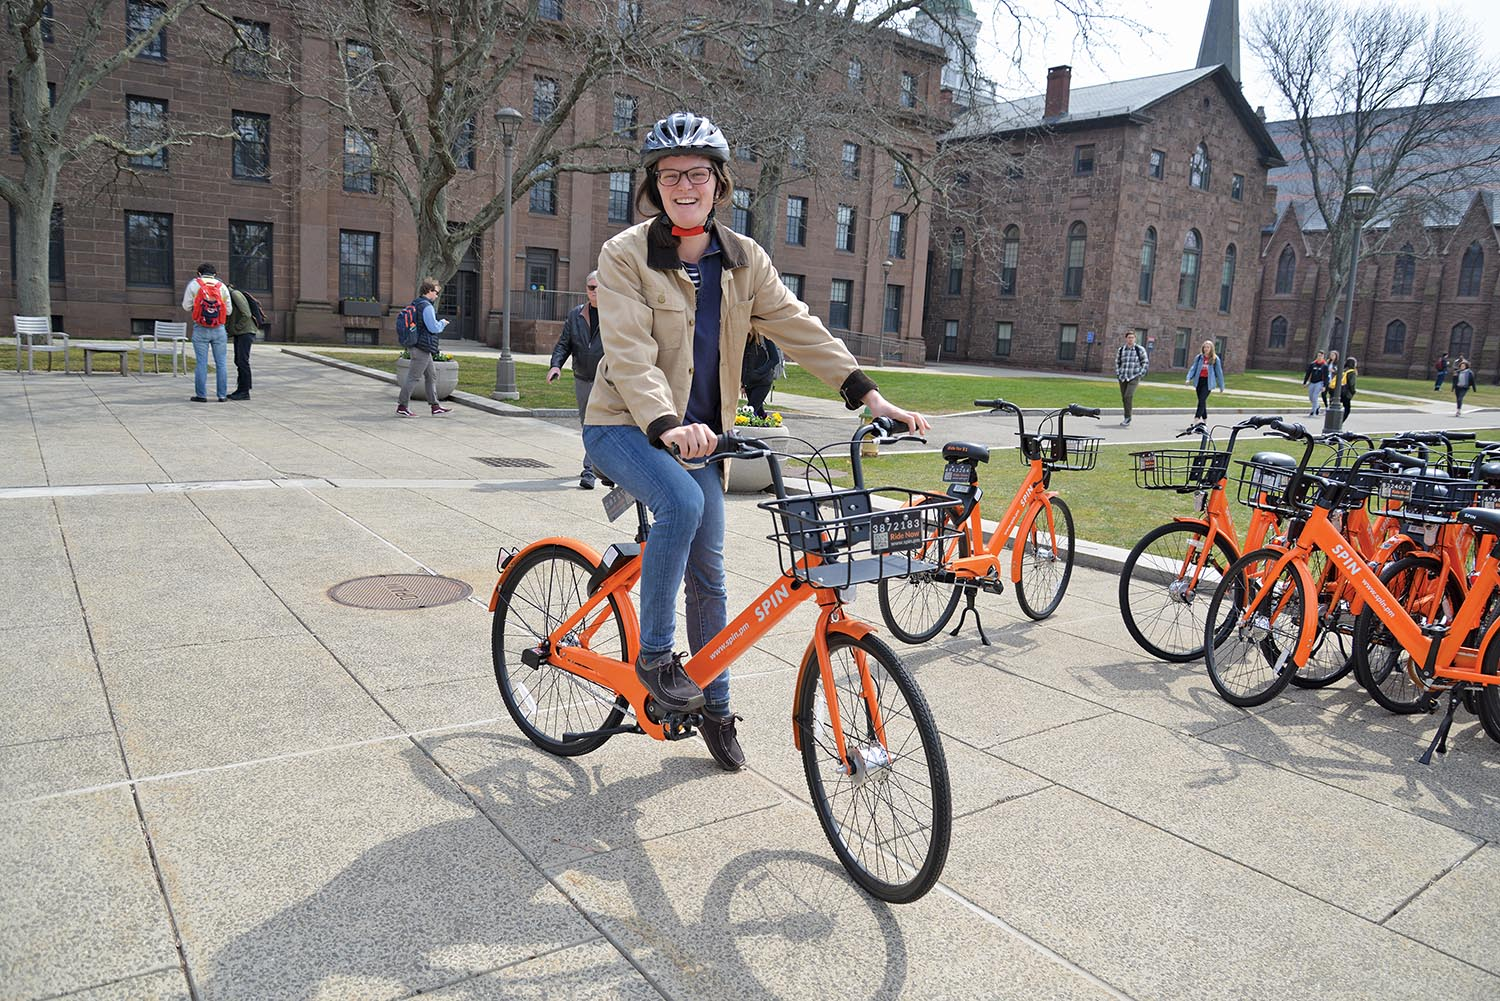 WESLEYAN INTRODUCES SPIN BIKESHARE PROGRAM